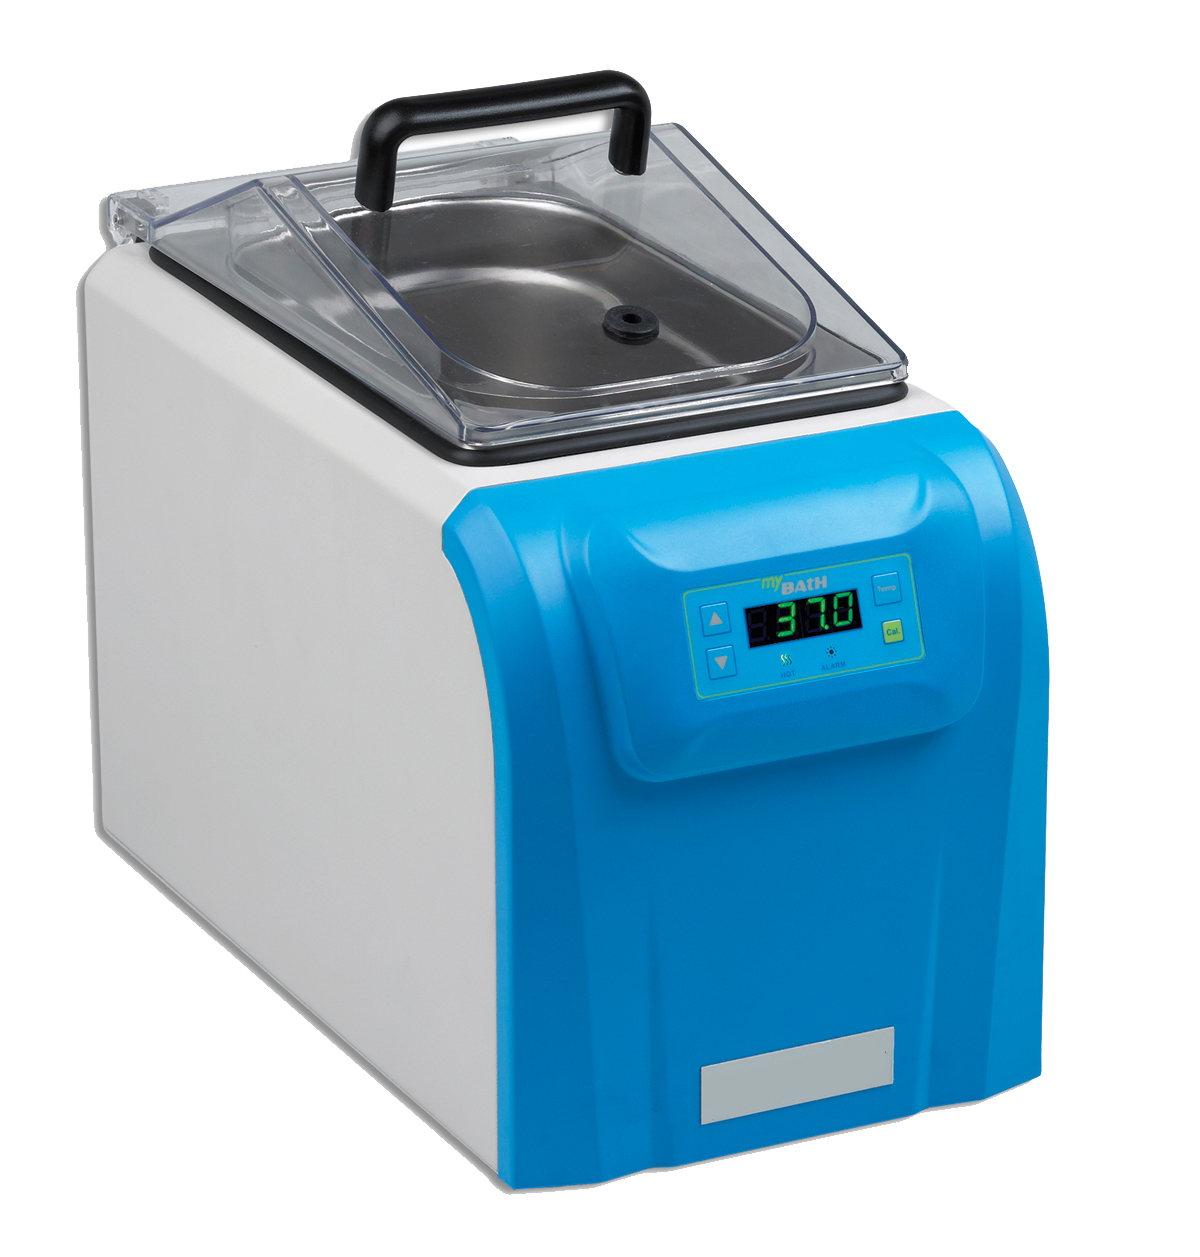 MyBath 4L DIGITAL WATER BATH